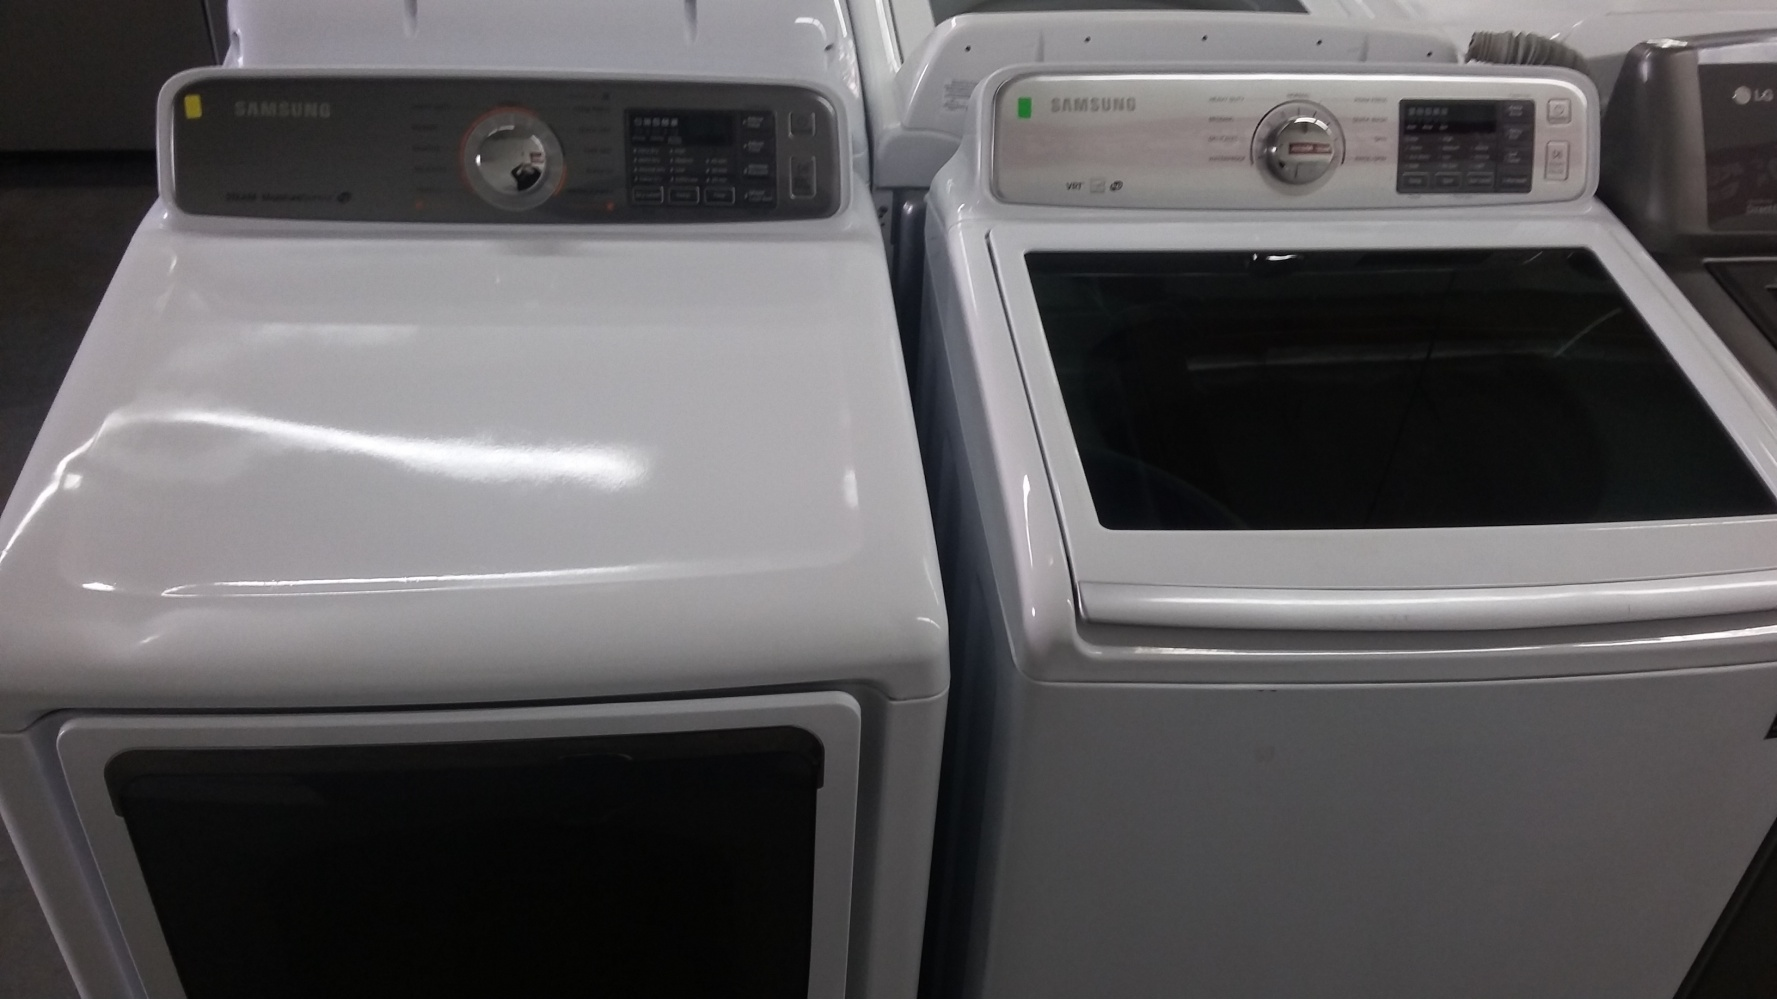 Samsung White Grey High Efficiency Top Load Washer W Gas